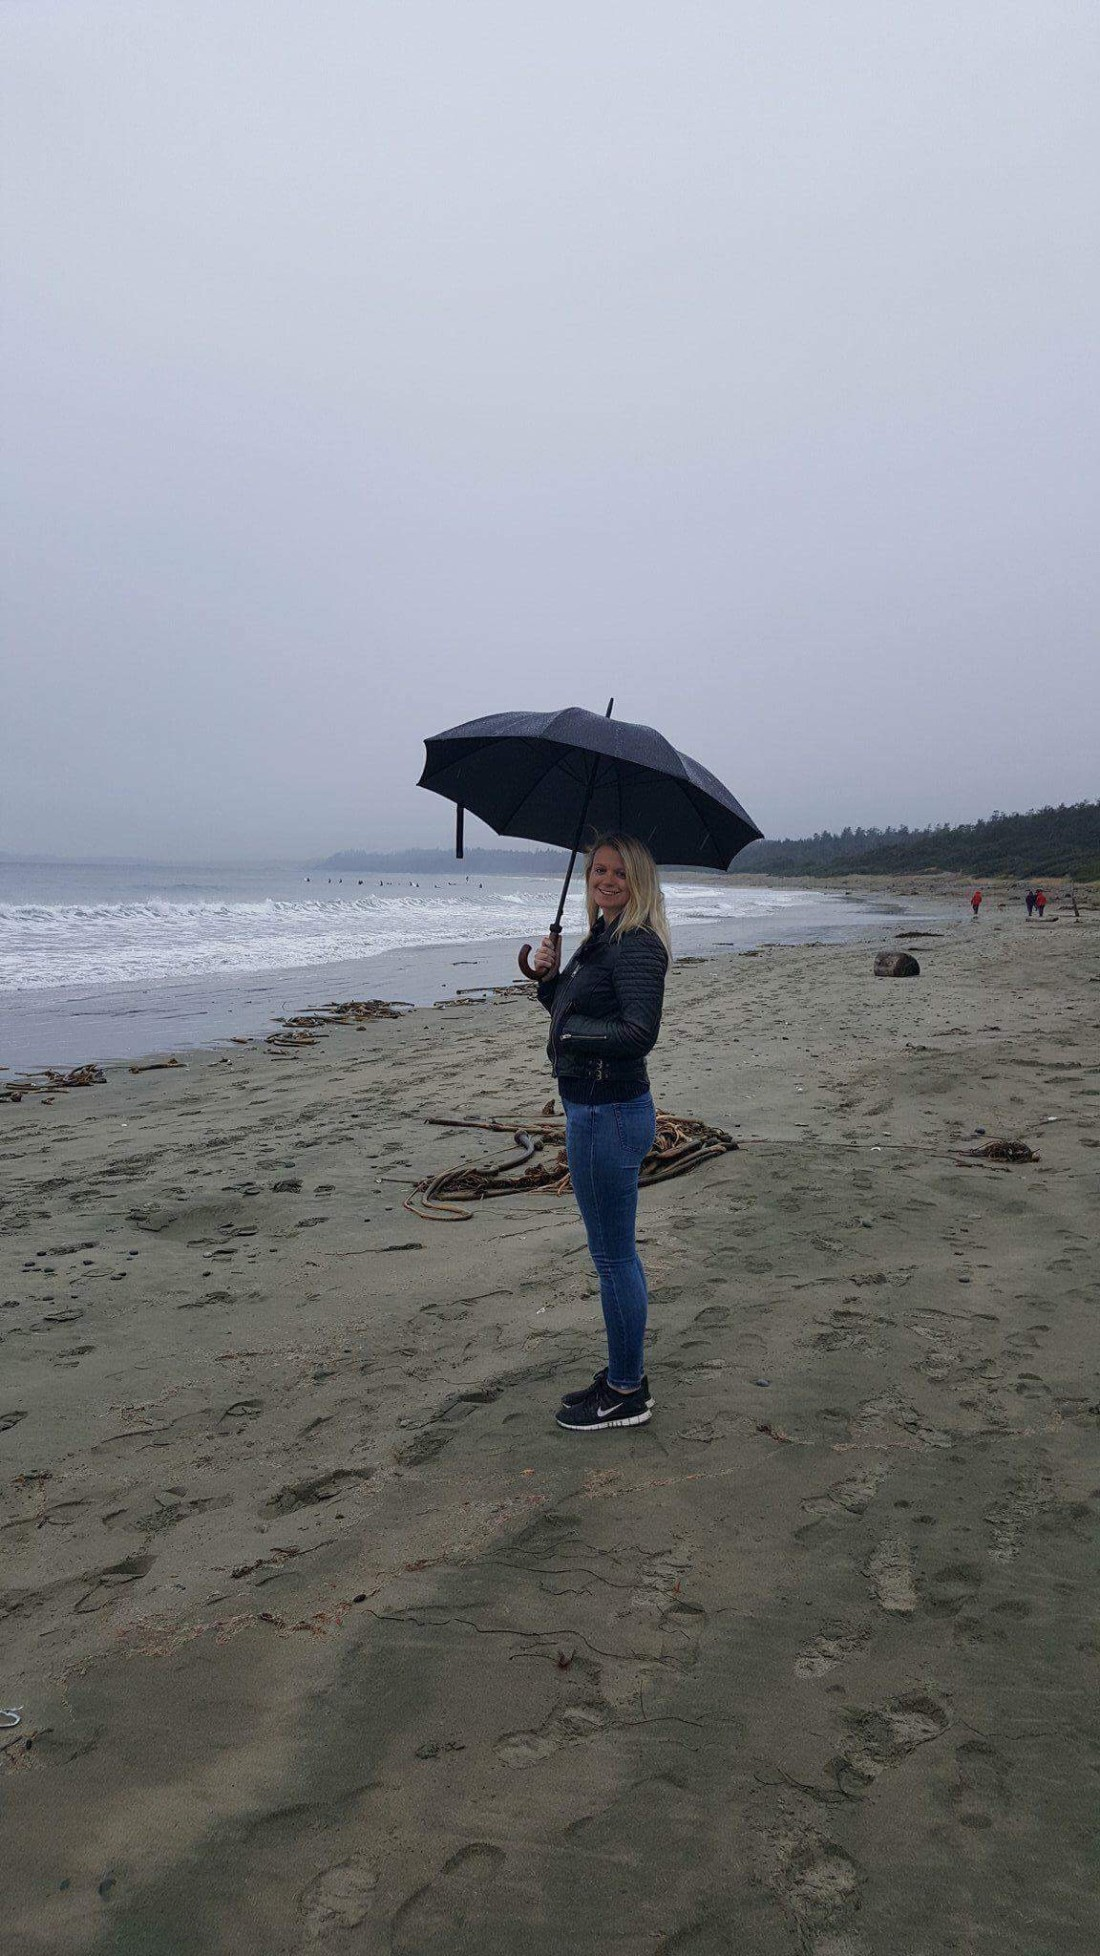 Laura with an umbrella on Long Beach, Ucluelet